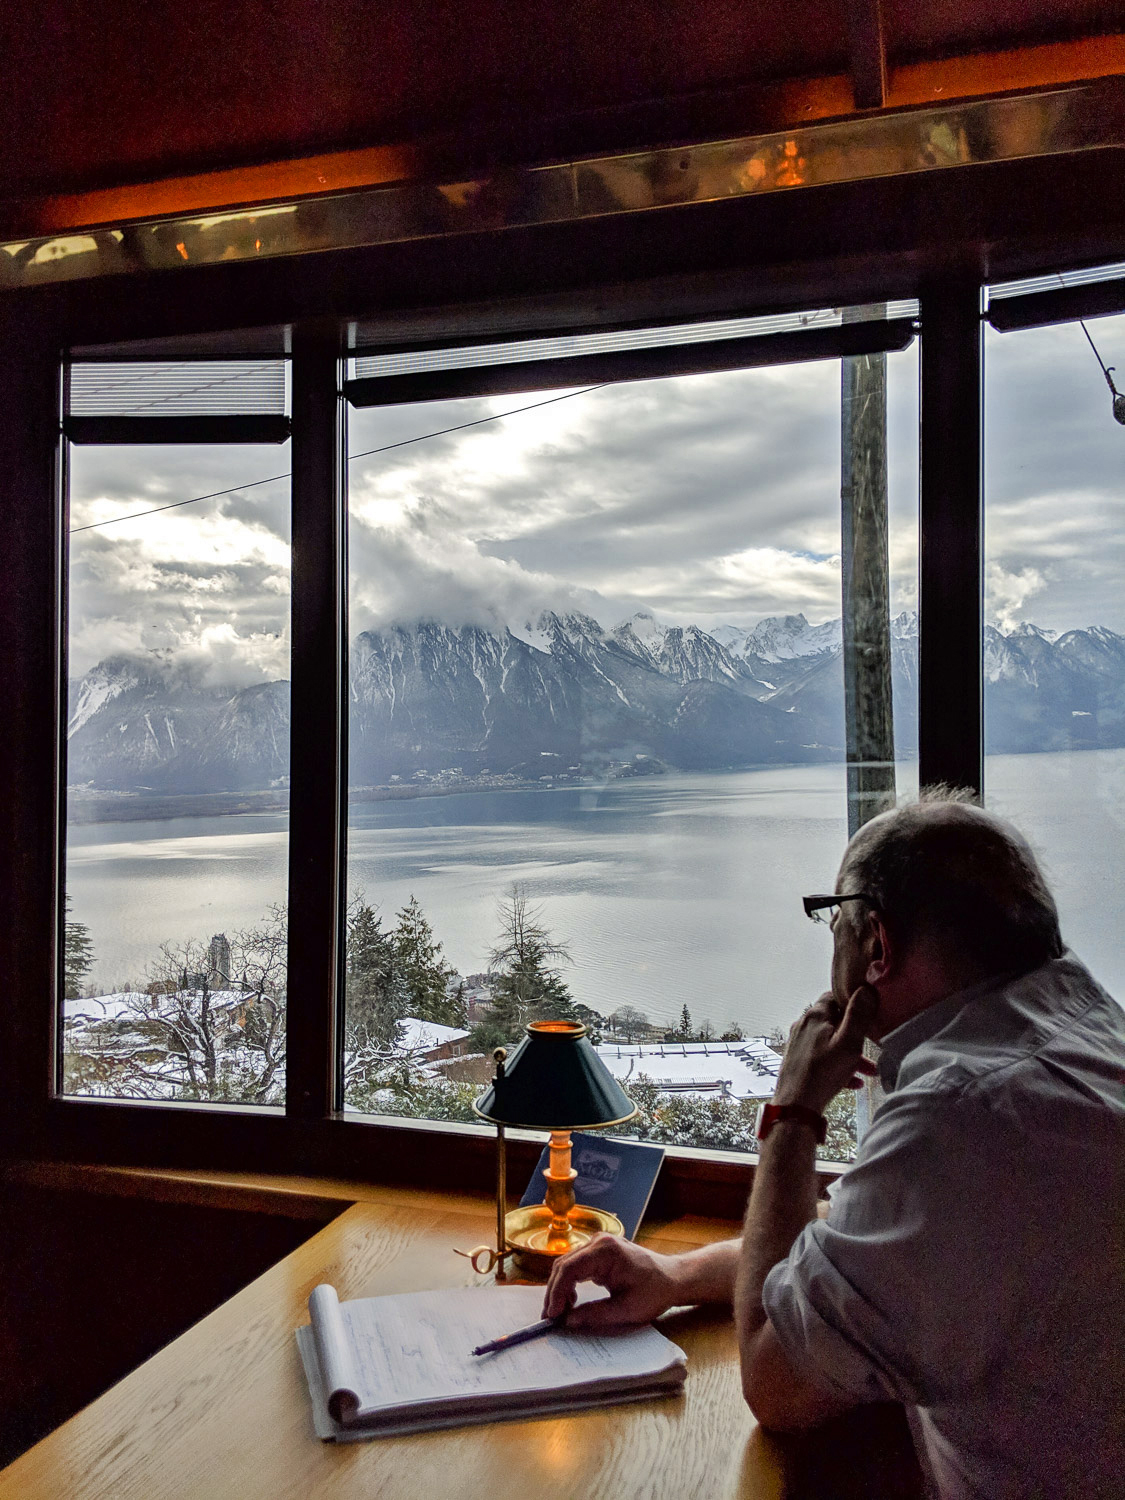 The GoldenPass train from Montreux to Gstaad offers dramatic views of Lake Geneva, Switzerland